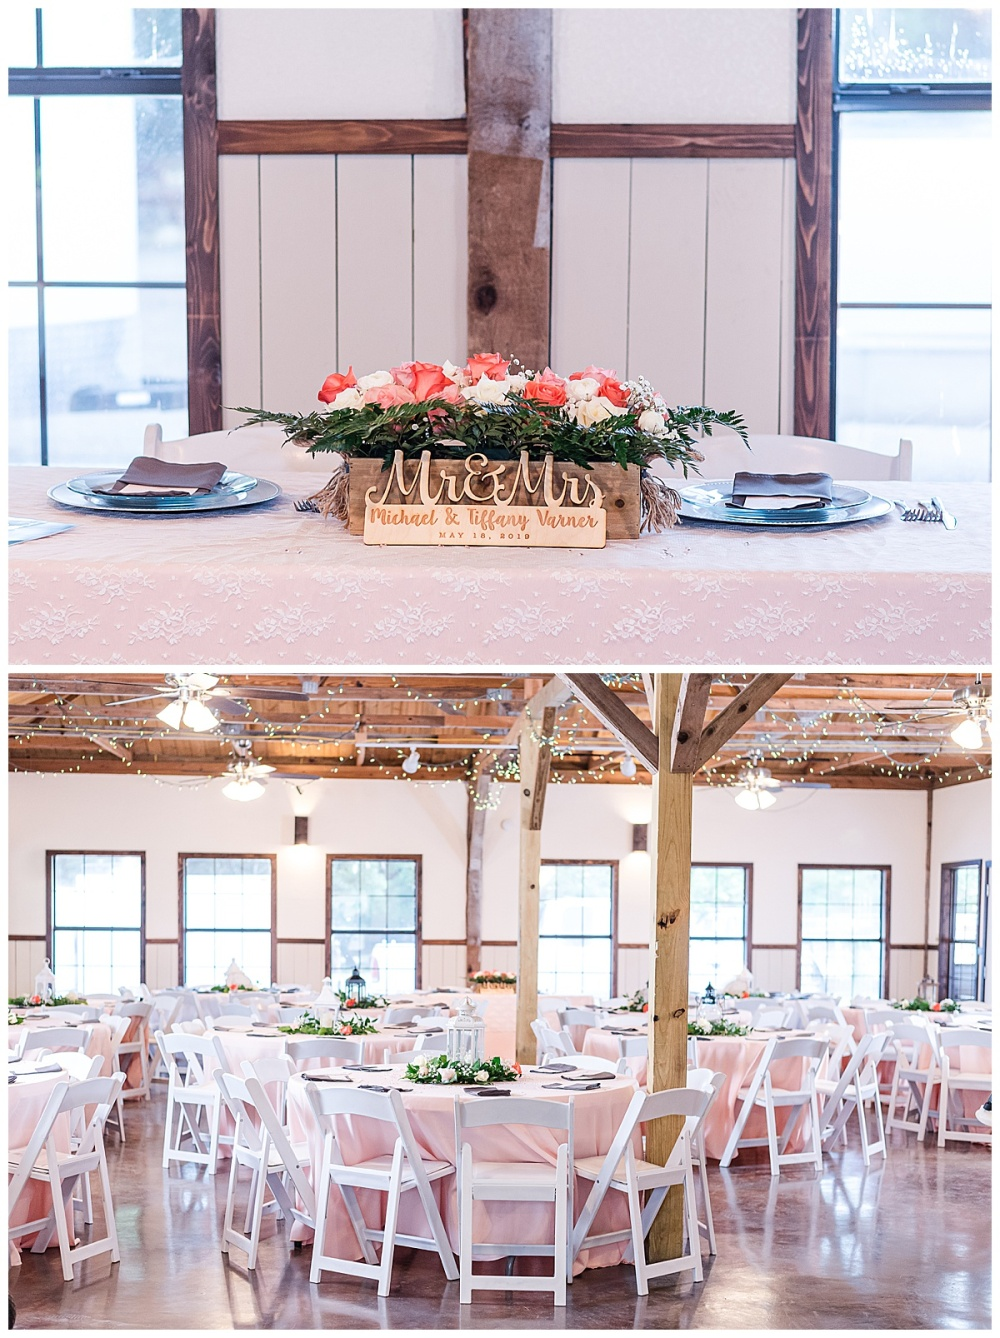 Michael-Tiffany-Wedding-New-Braunfels-Texas-Canyon-Lake-Cabins-and-Cottages-Carly-Barton-Photography_0006.jpg